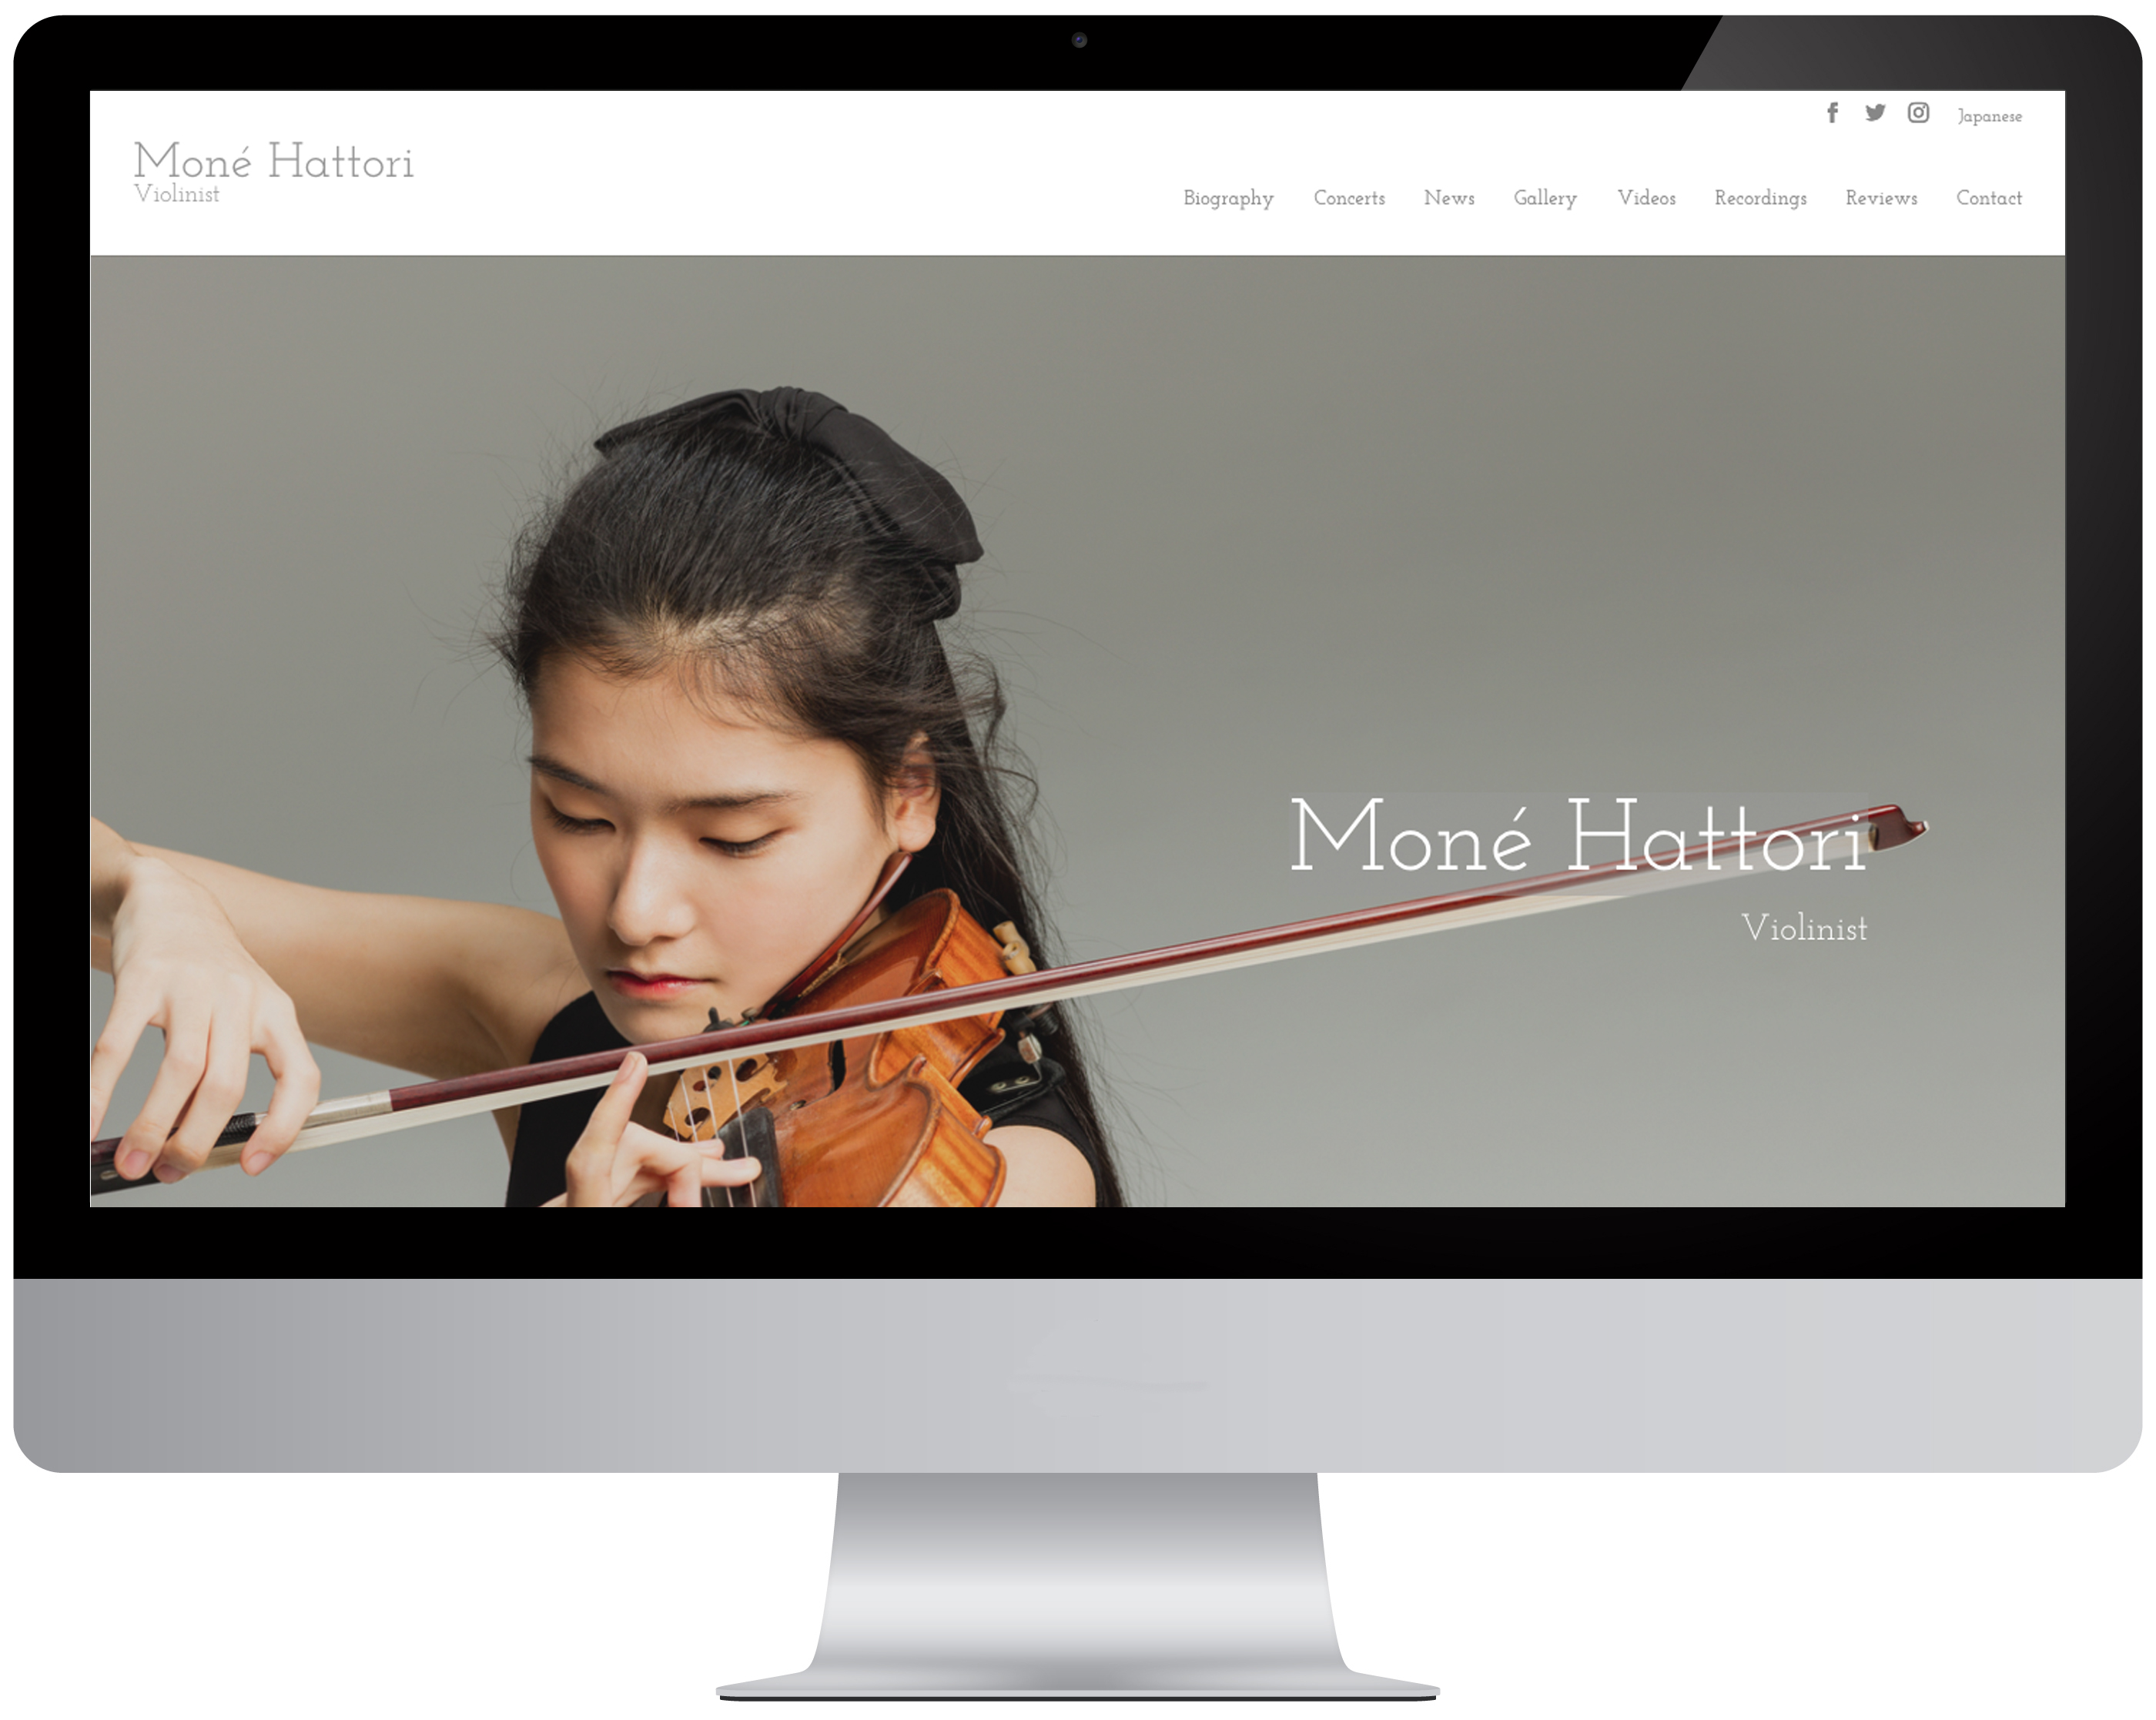 Video Production and Website Design Services for Musicians 24